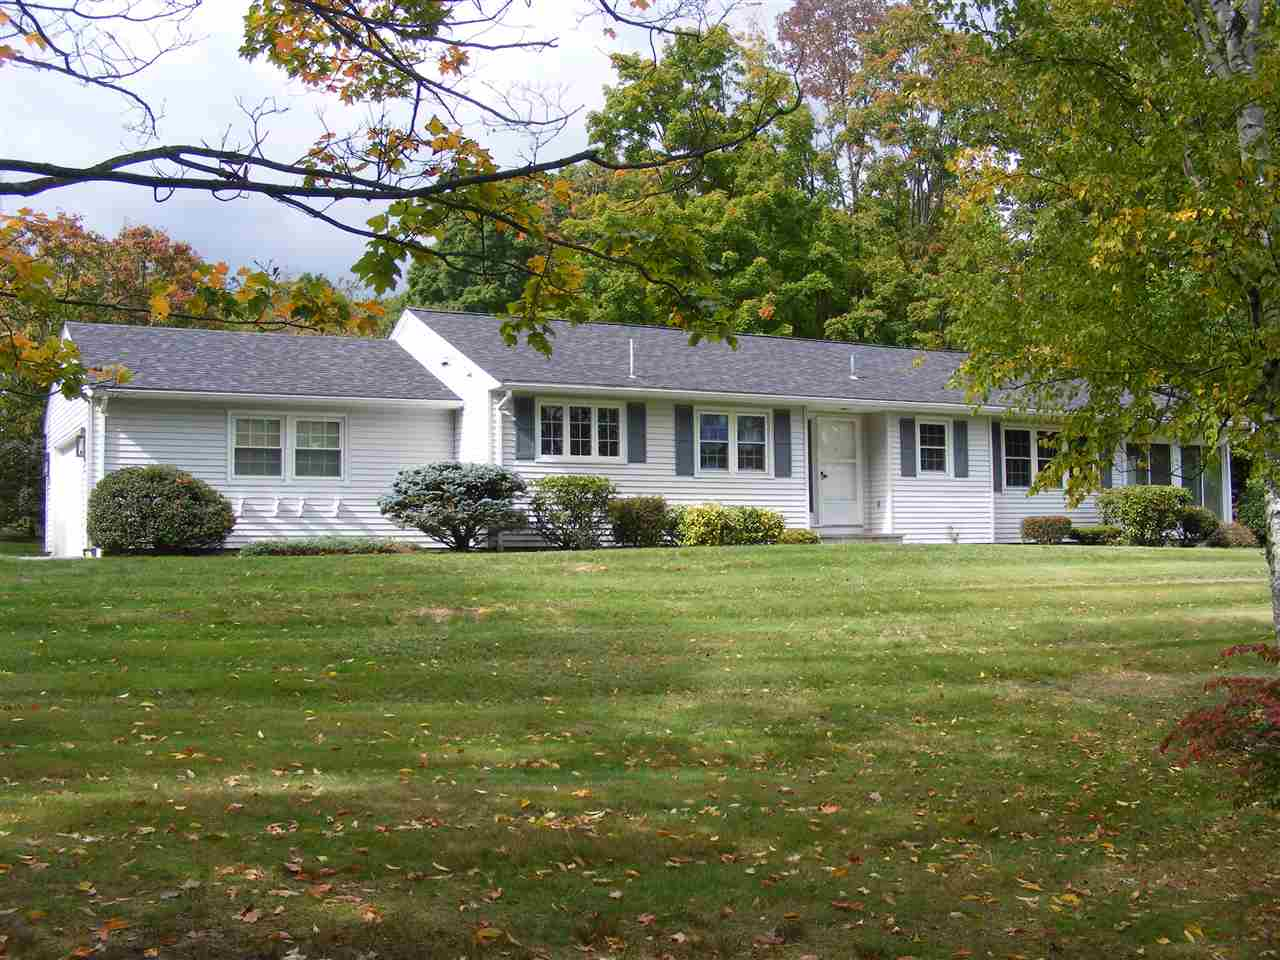 46 Maple Avenue, Atkinson, NH 03811